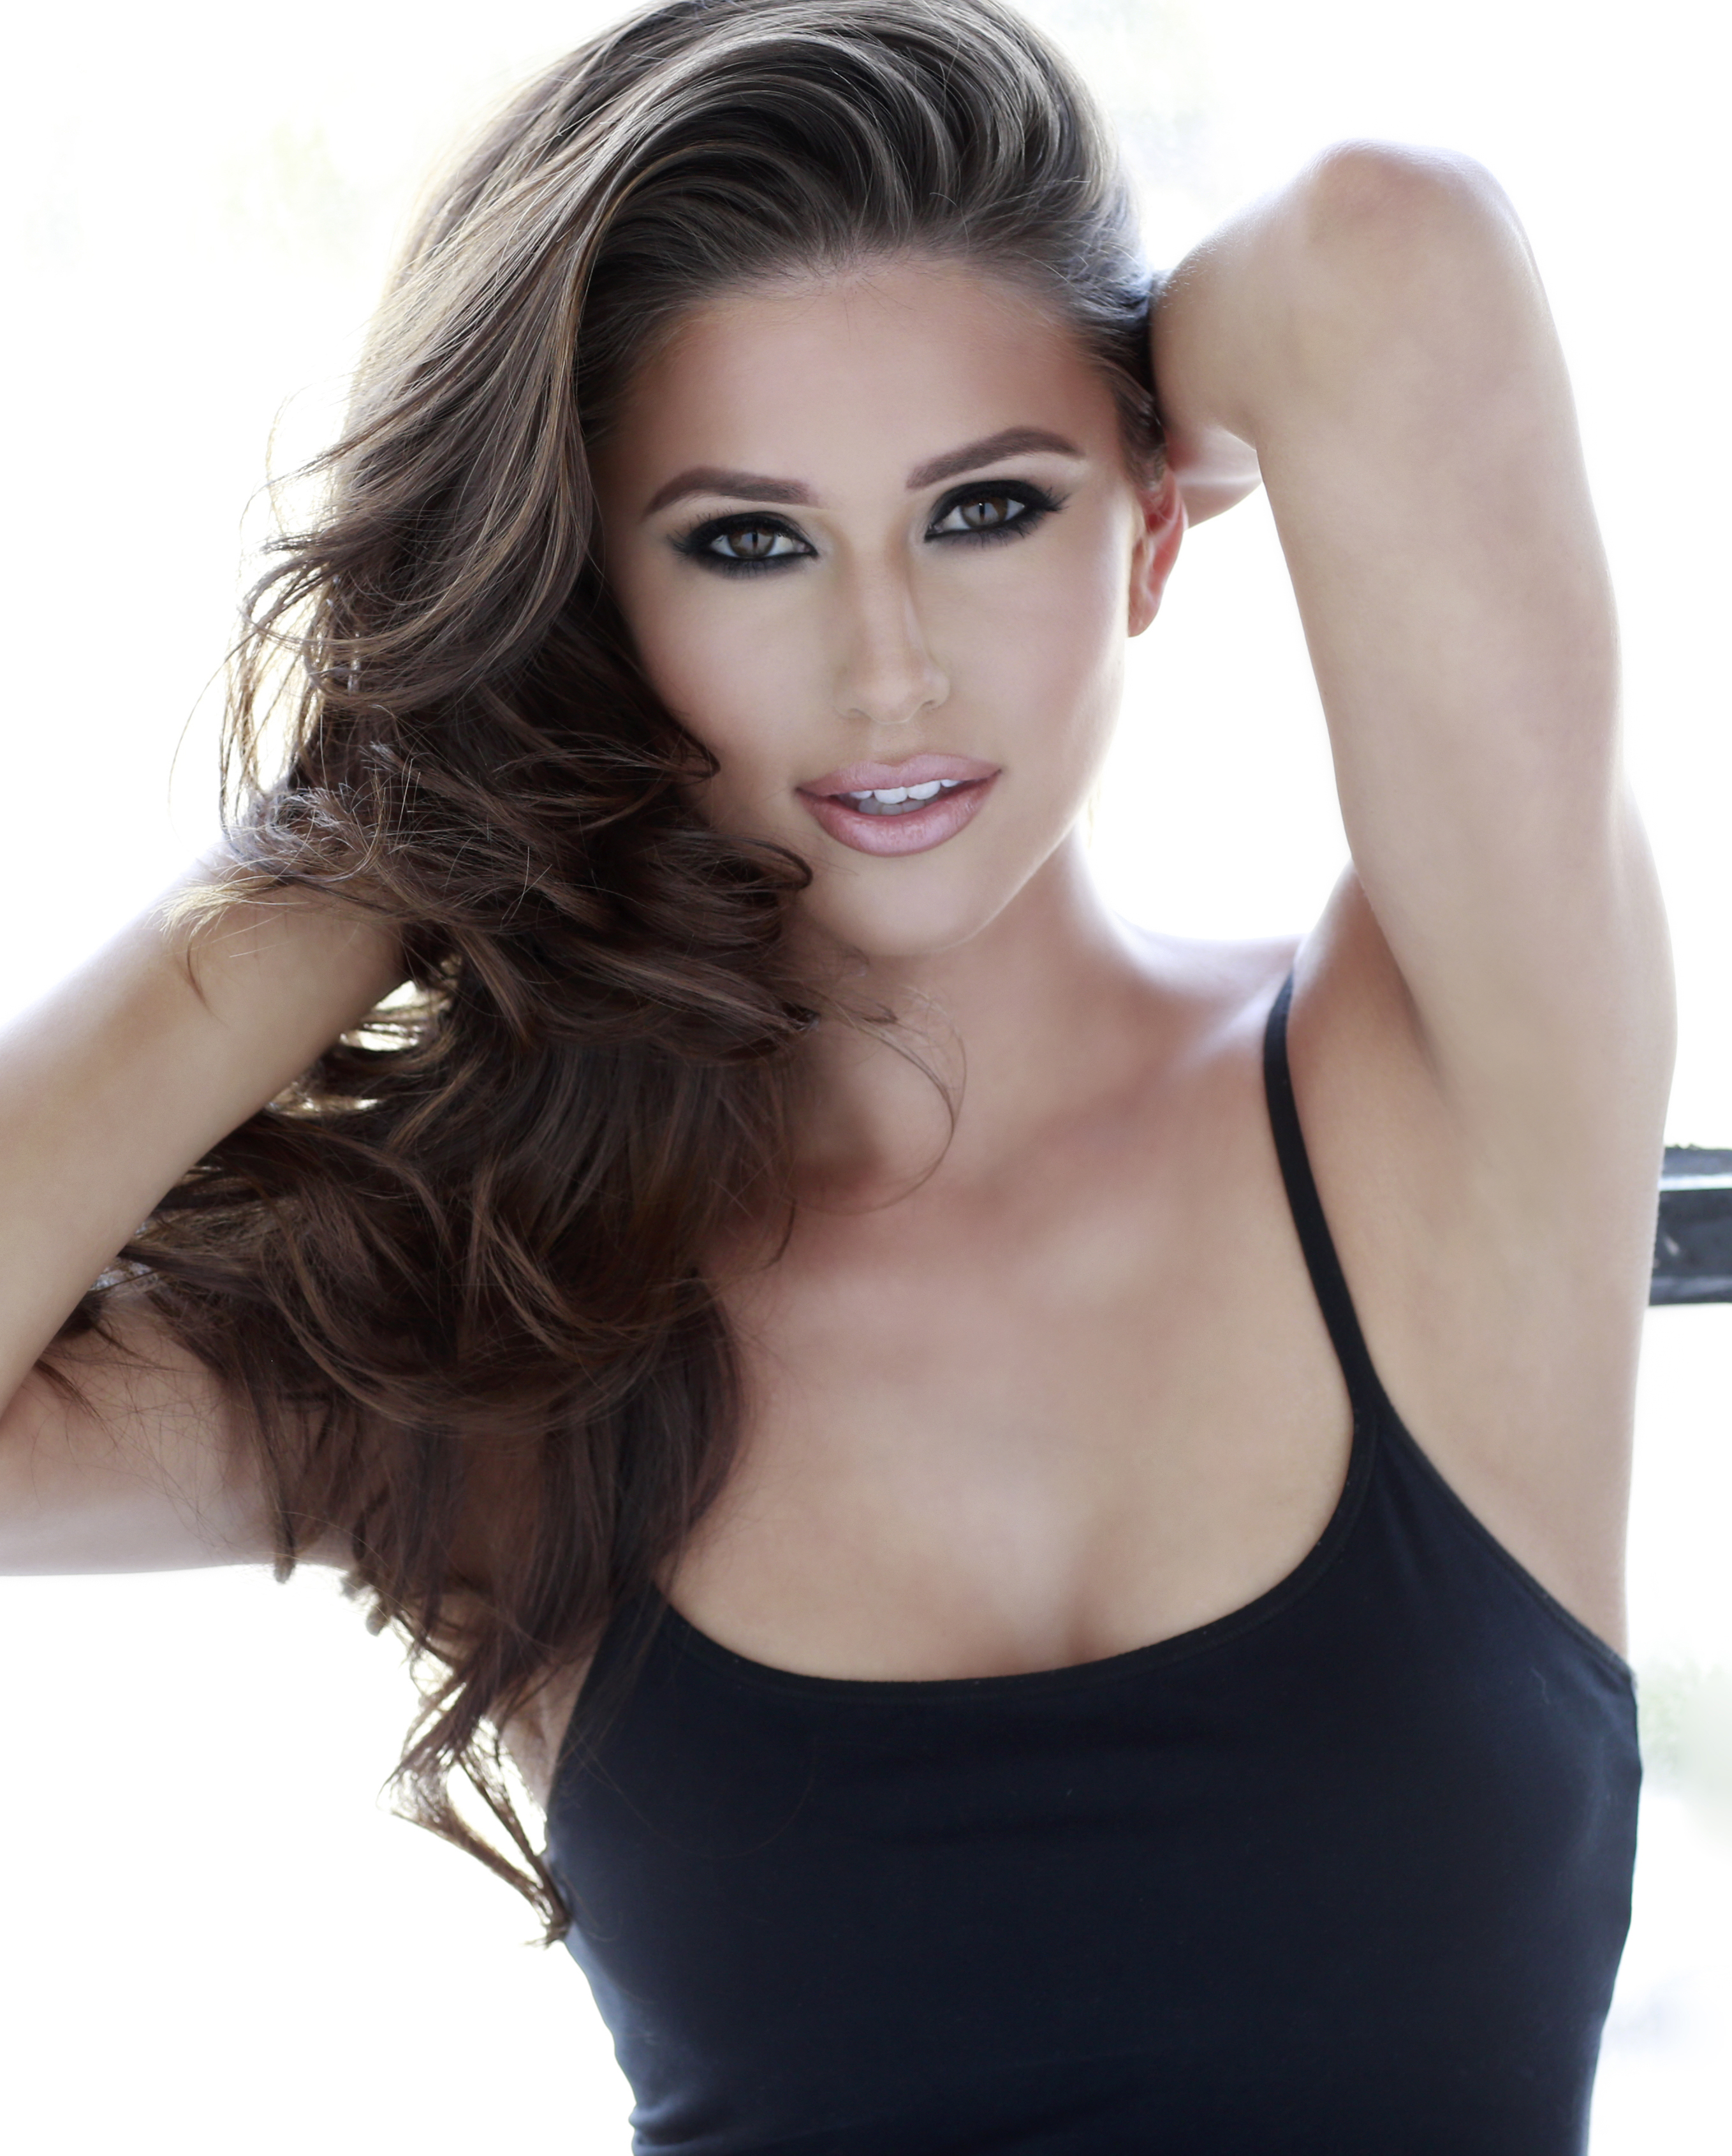 Young Nia Sanchez nudes (85 photo), Topless, Leaked, Boobs, panties 2018